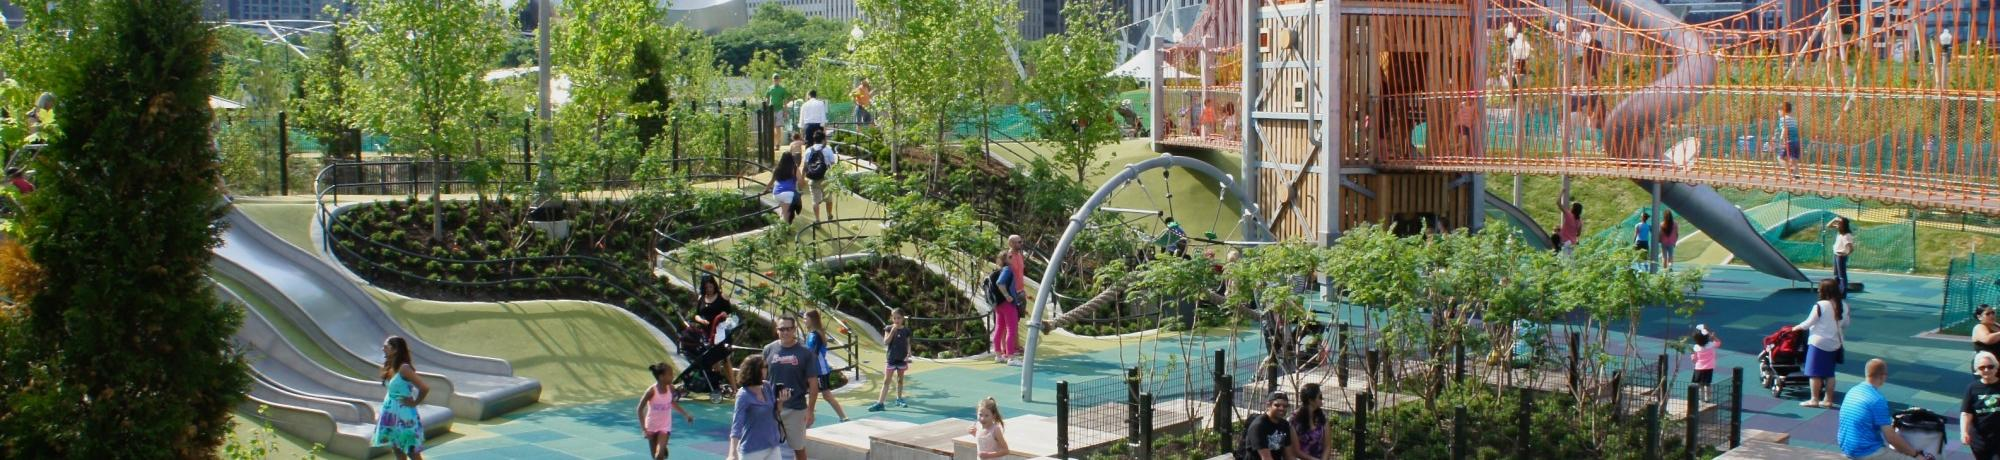 Maggie Daley Park downtown Chicago is an example of an all-ages playscape